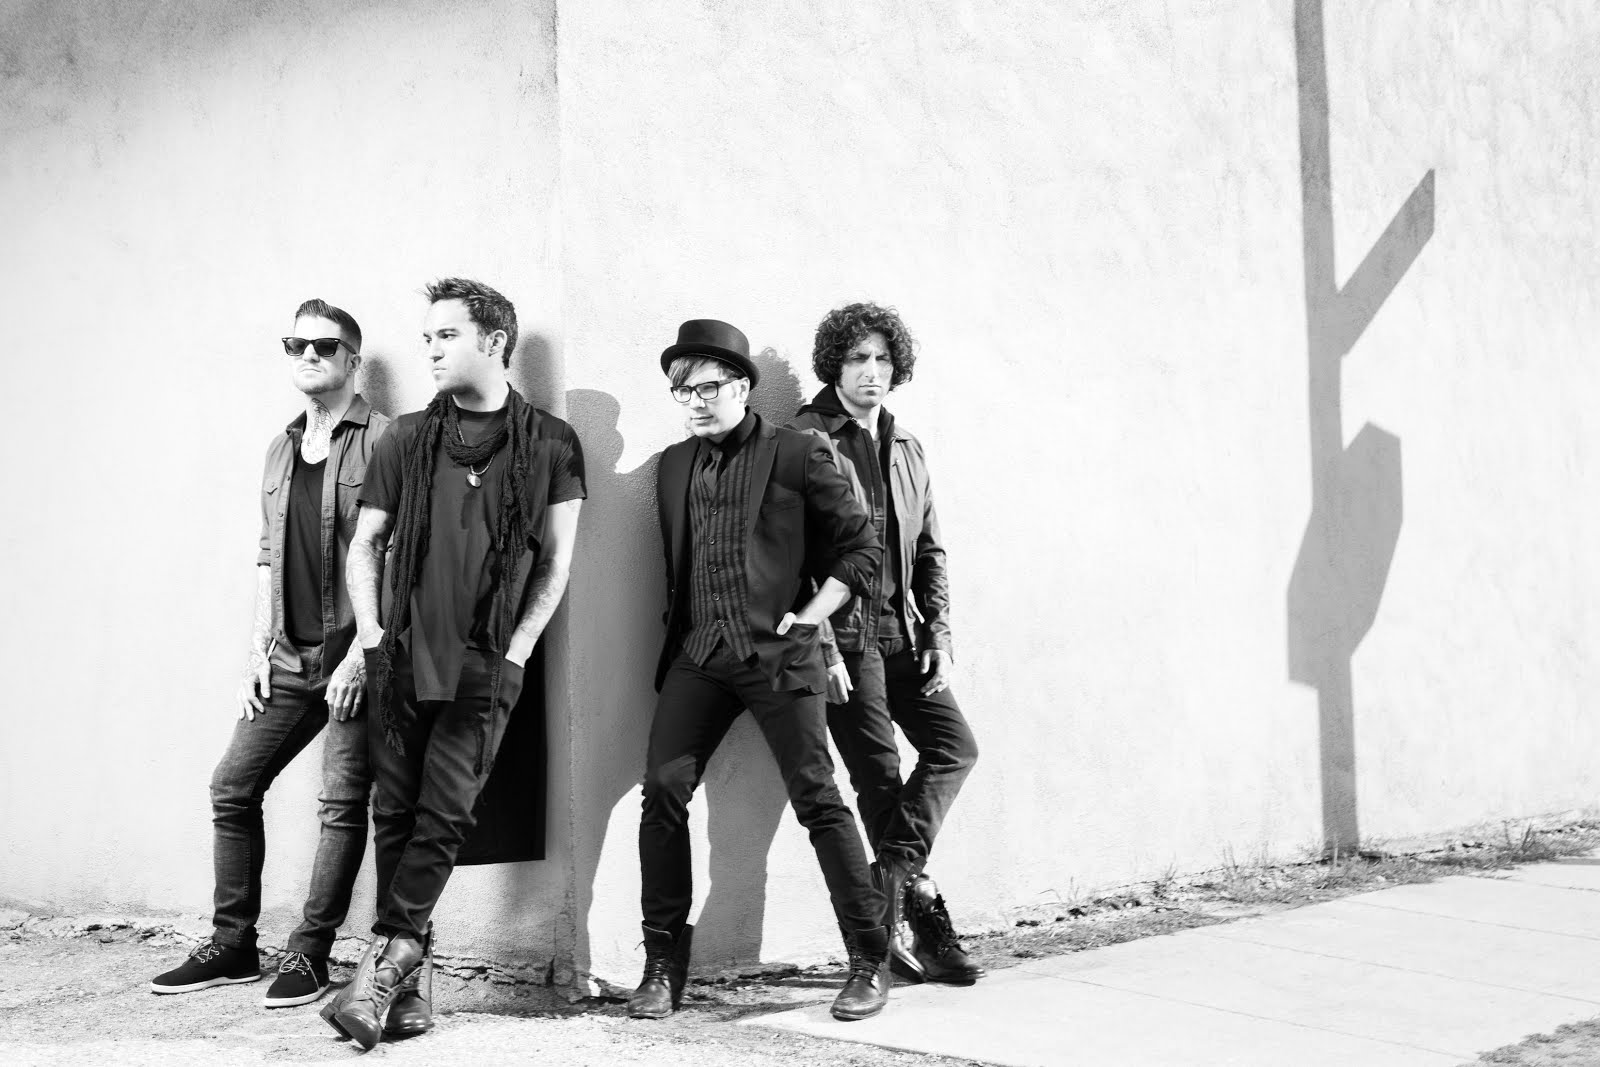 FALL OUT BOY returning to Australia this October with special guests BRITISH INDIA